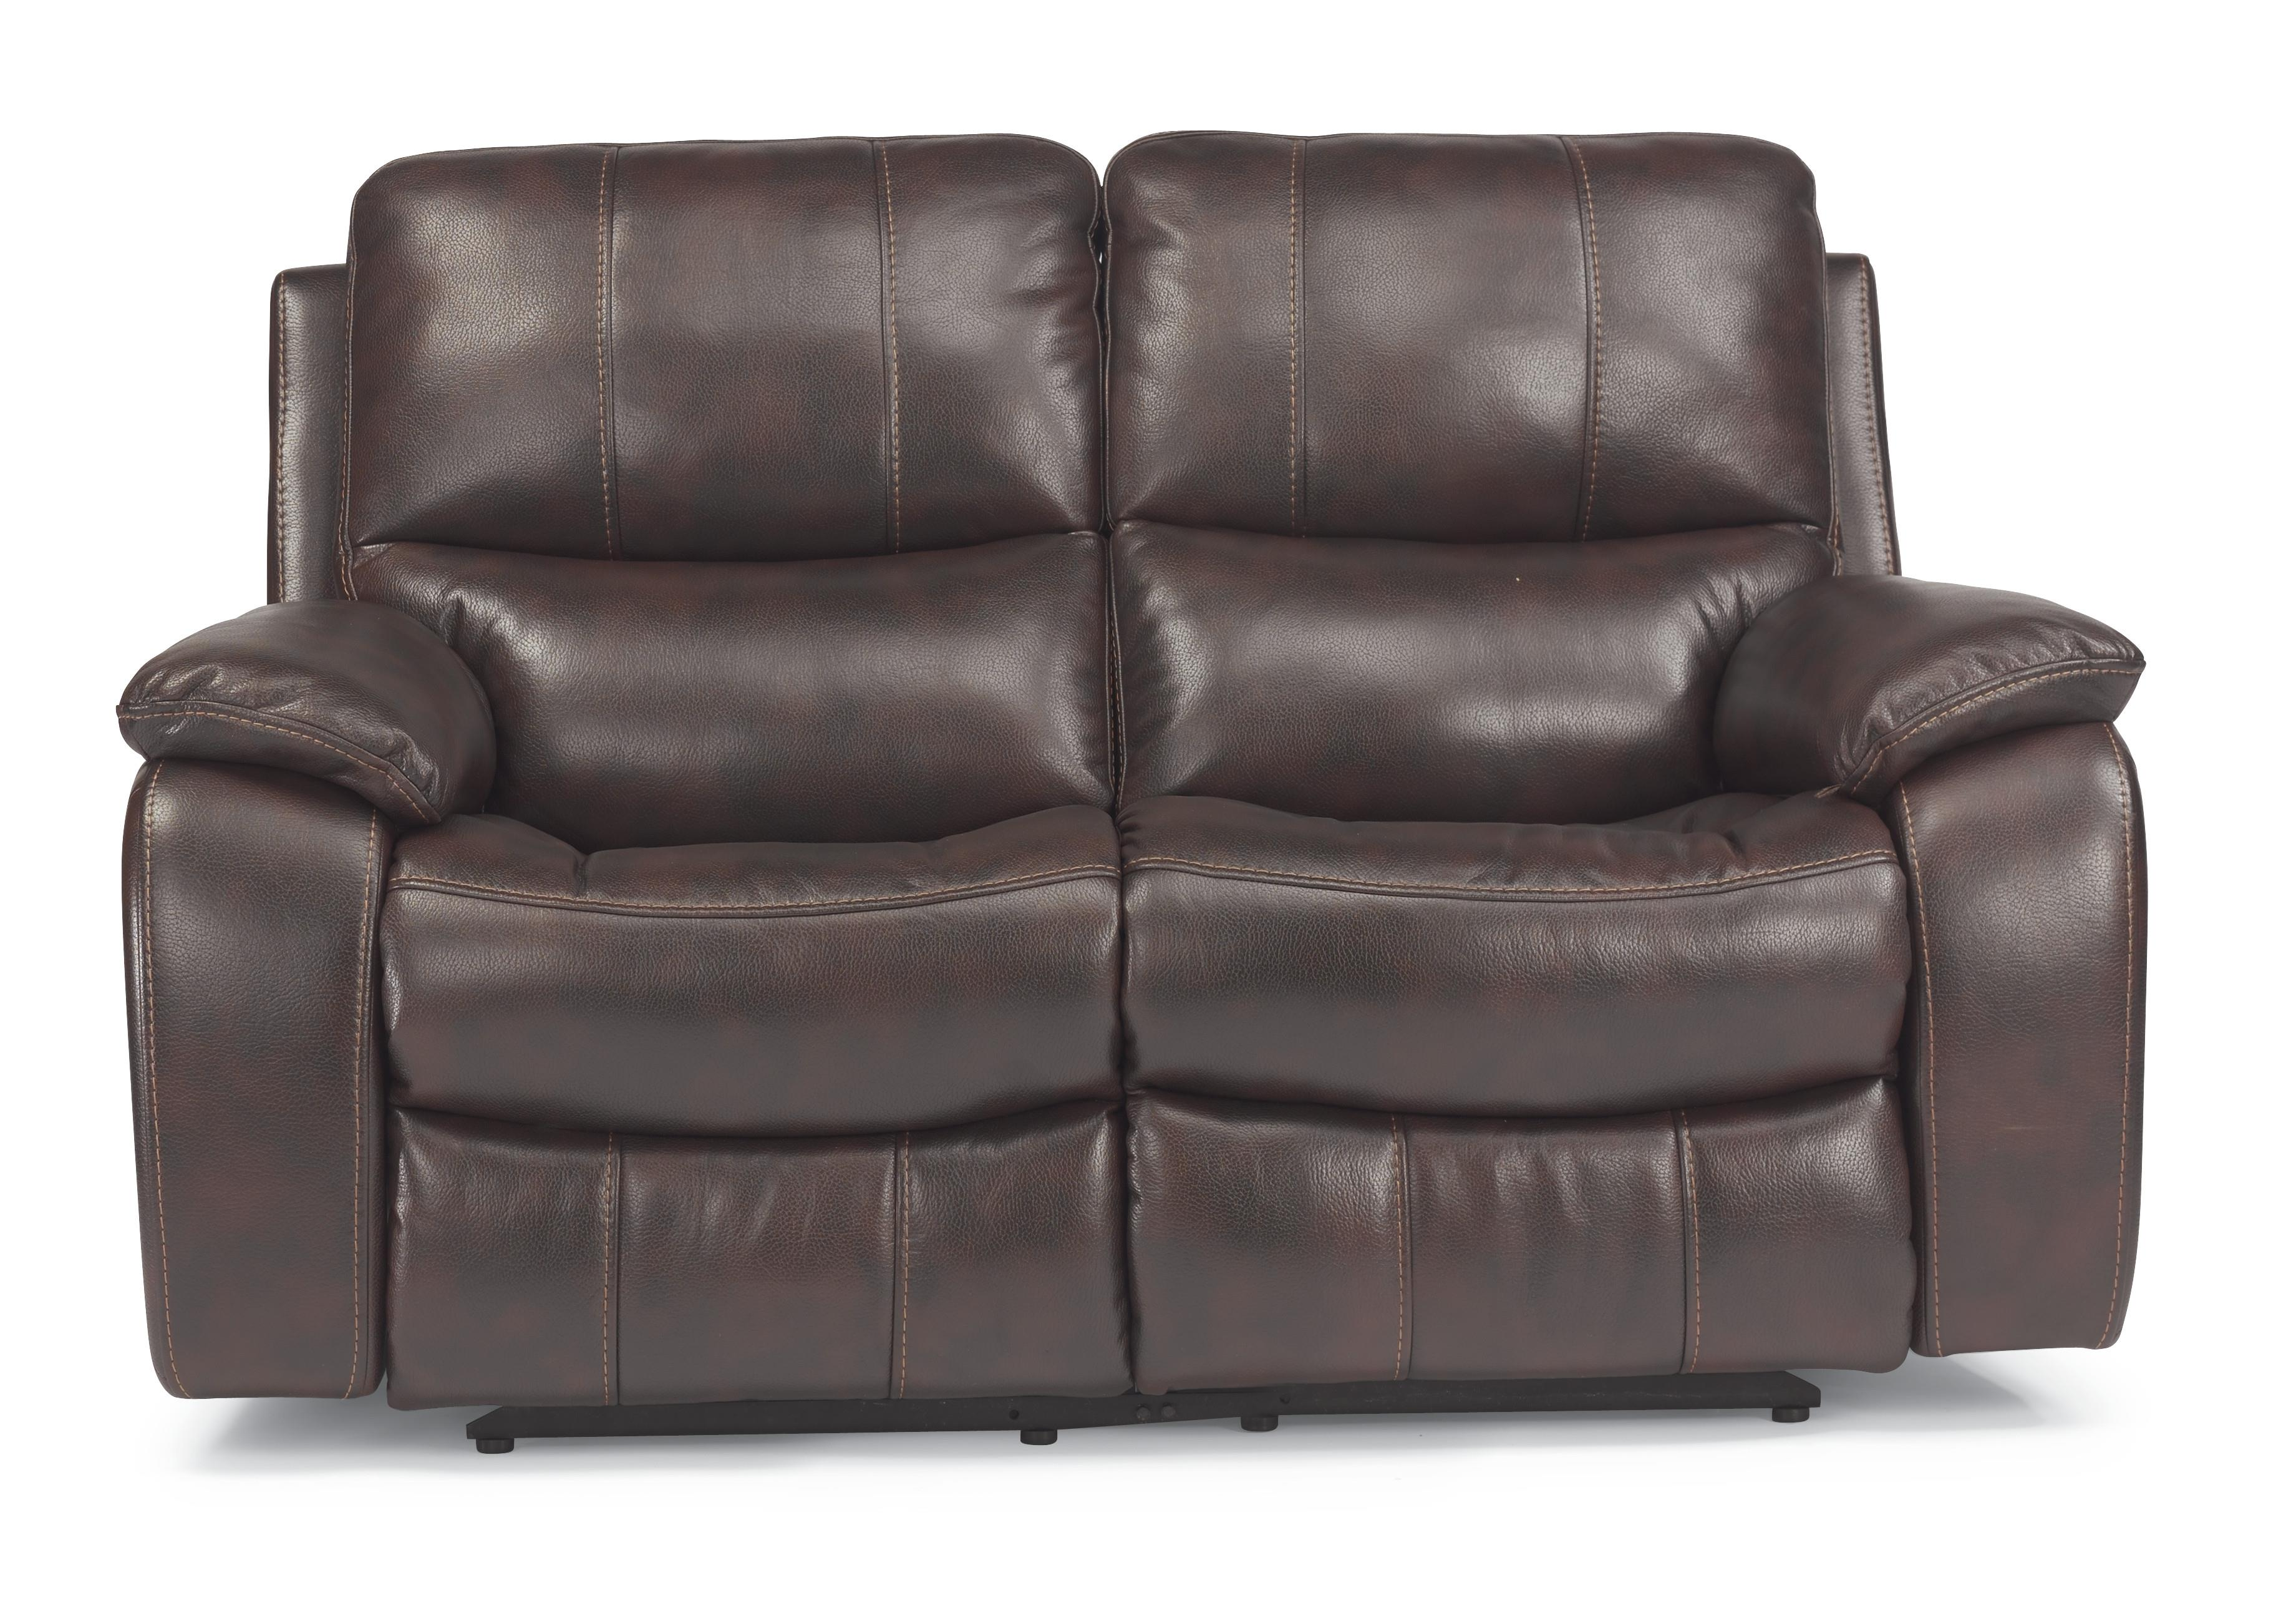 Double Power Reclining Love Seat